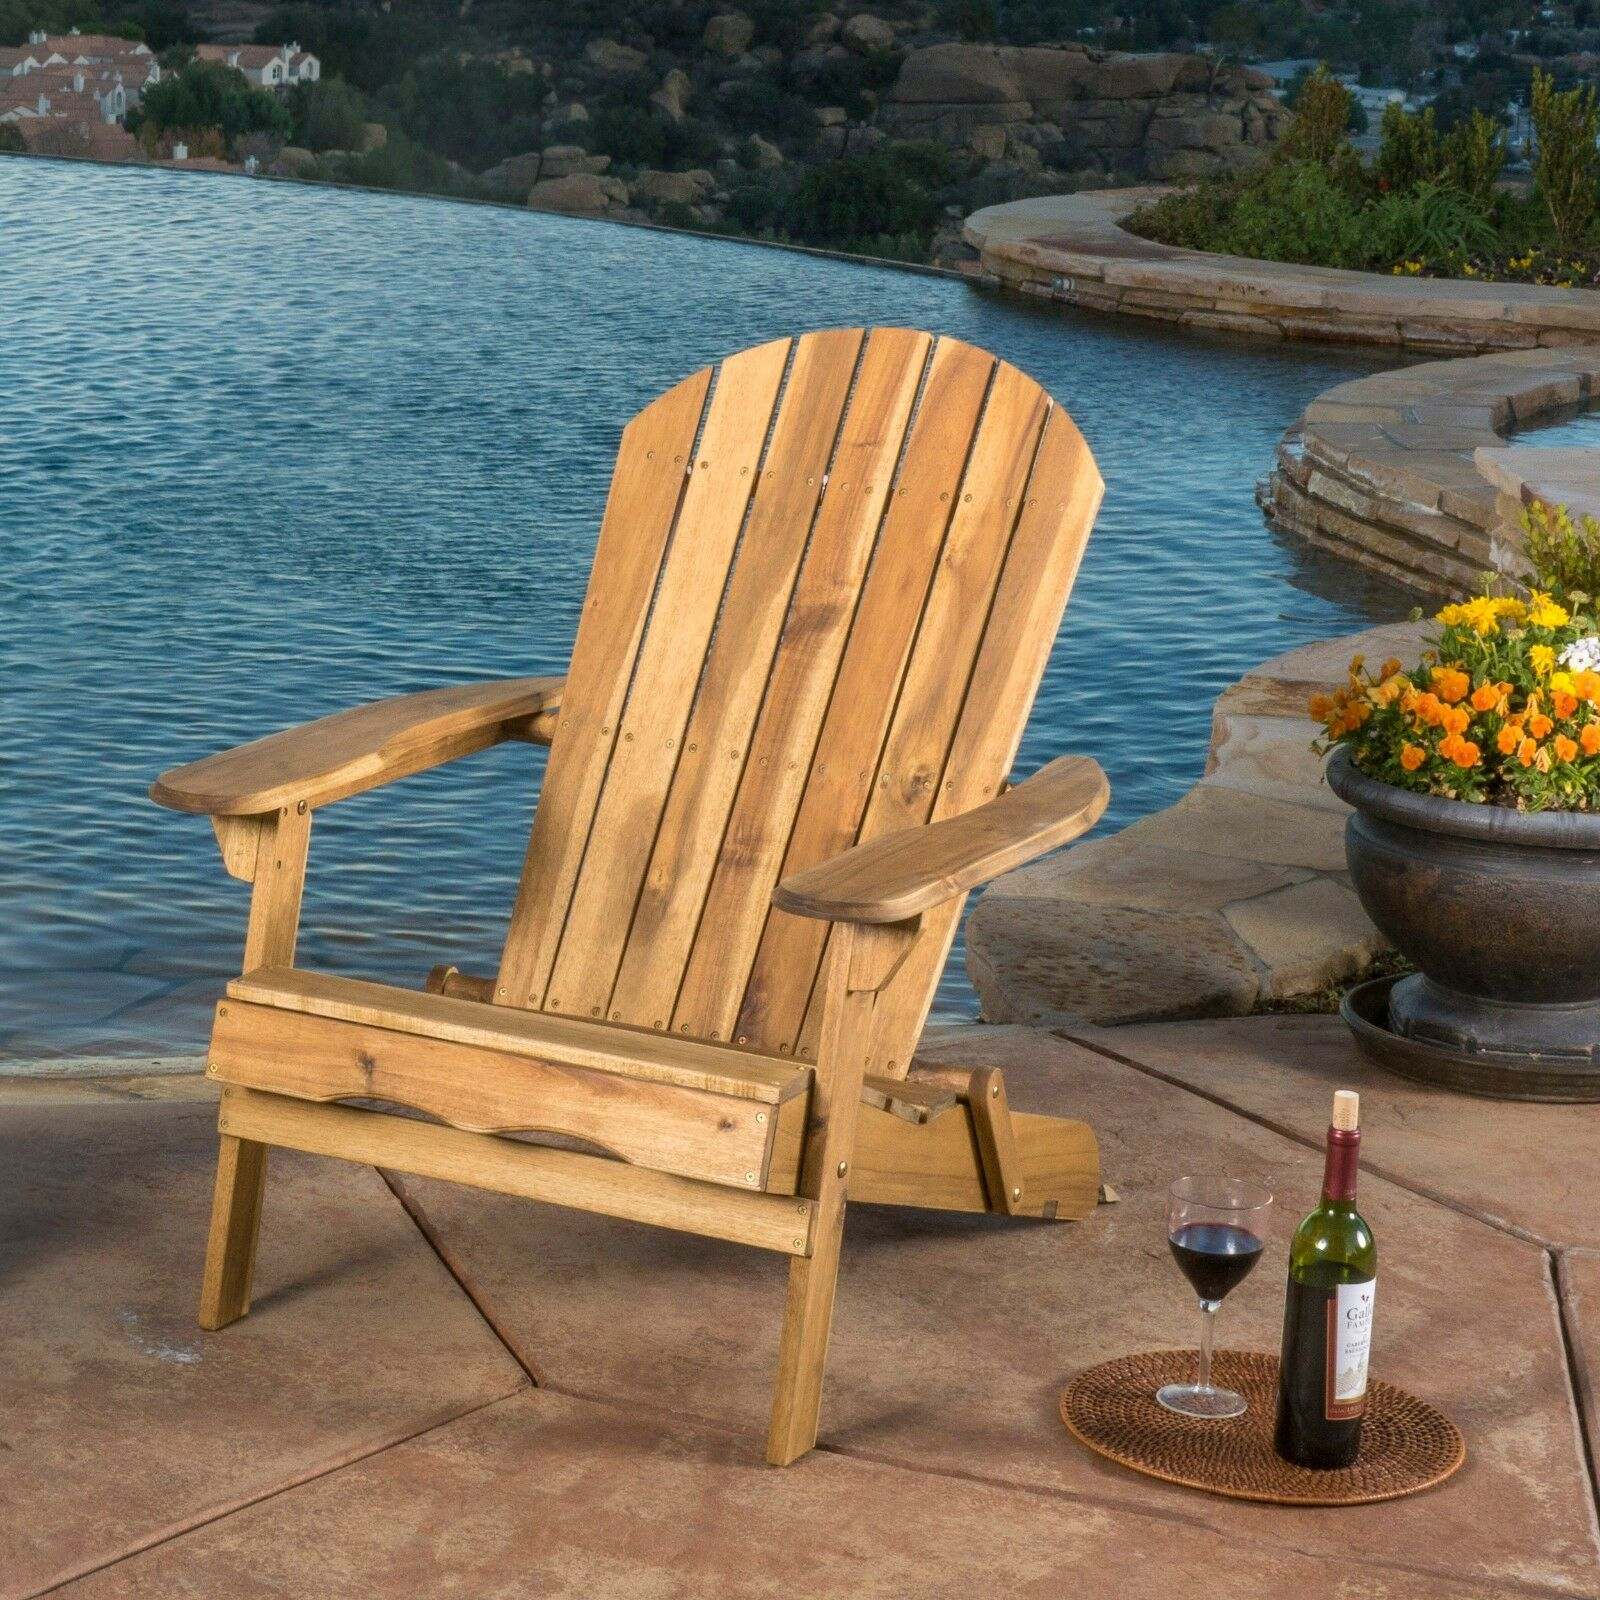 master chair shorea richmond deluxe belham cfm set side richmondadirondackchairsetwithfreesidetable with product living adirondack wood chairs hayneedle free table